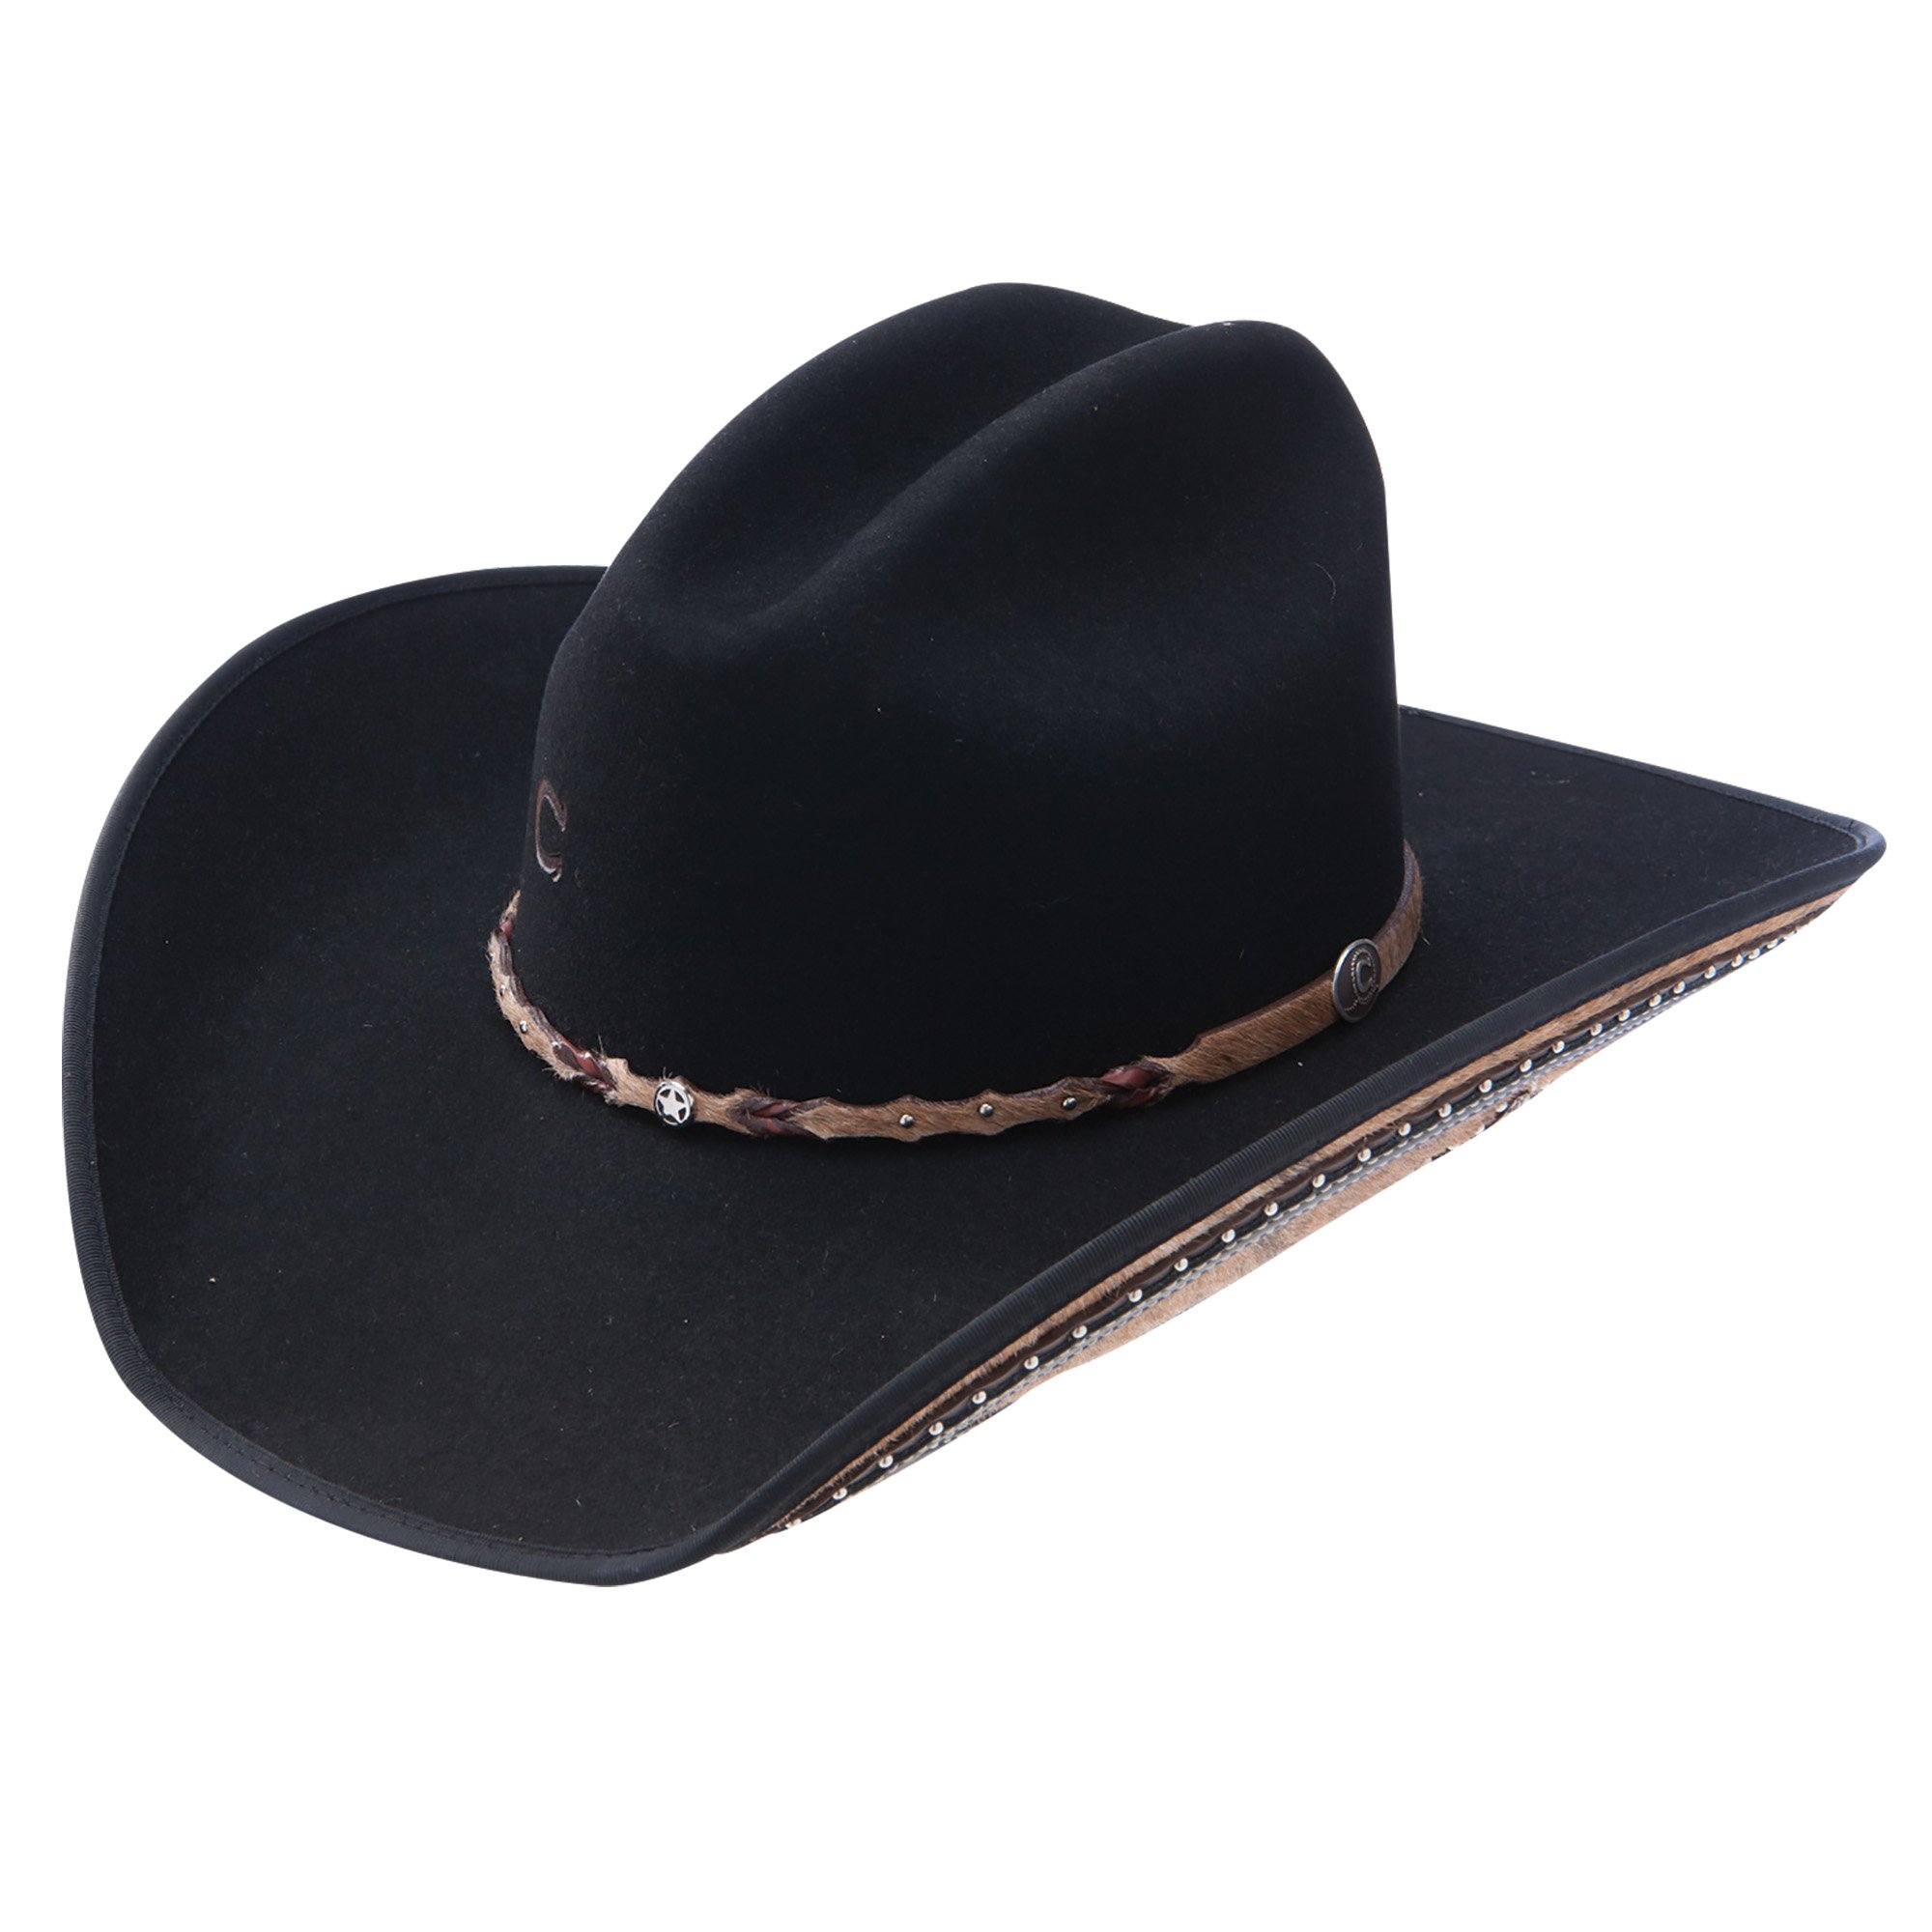 Charlie 1 Horse Rising Star Color Black Cowboy Hat (7) by Charlie 1 Horse